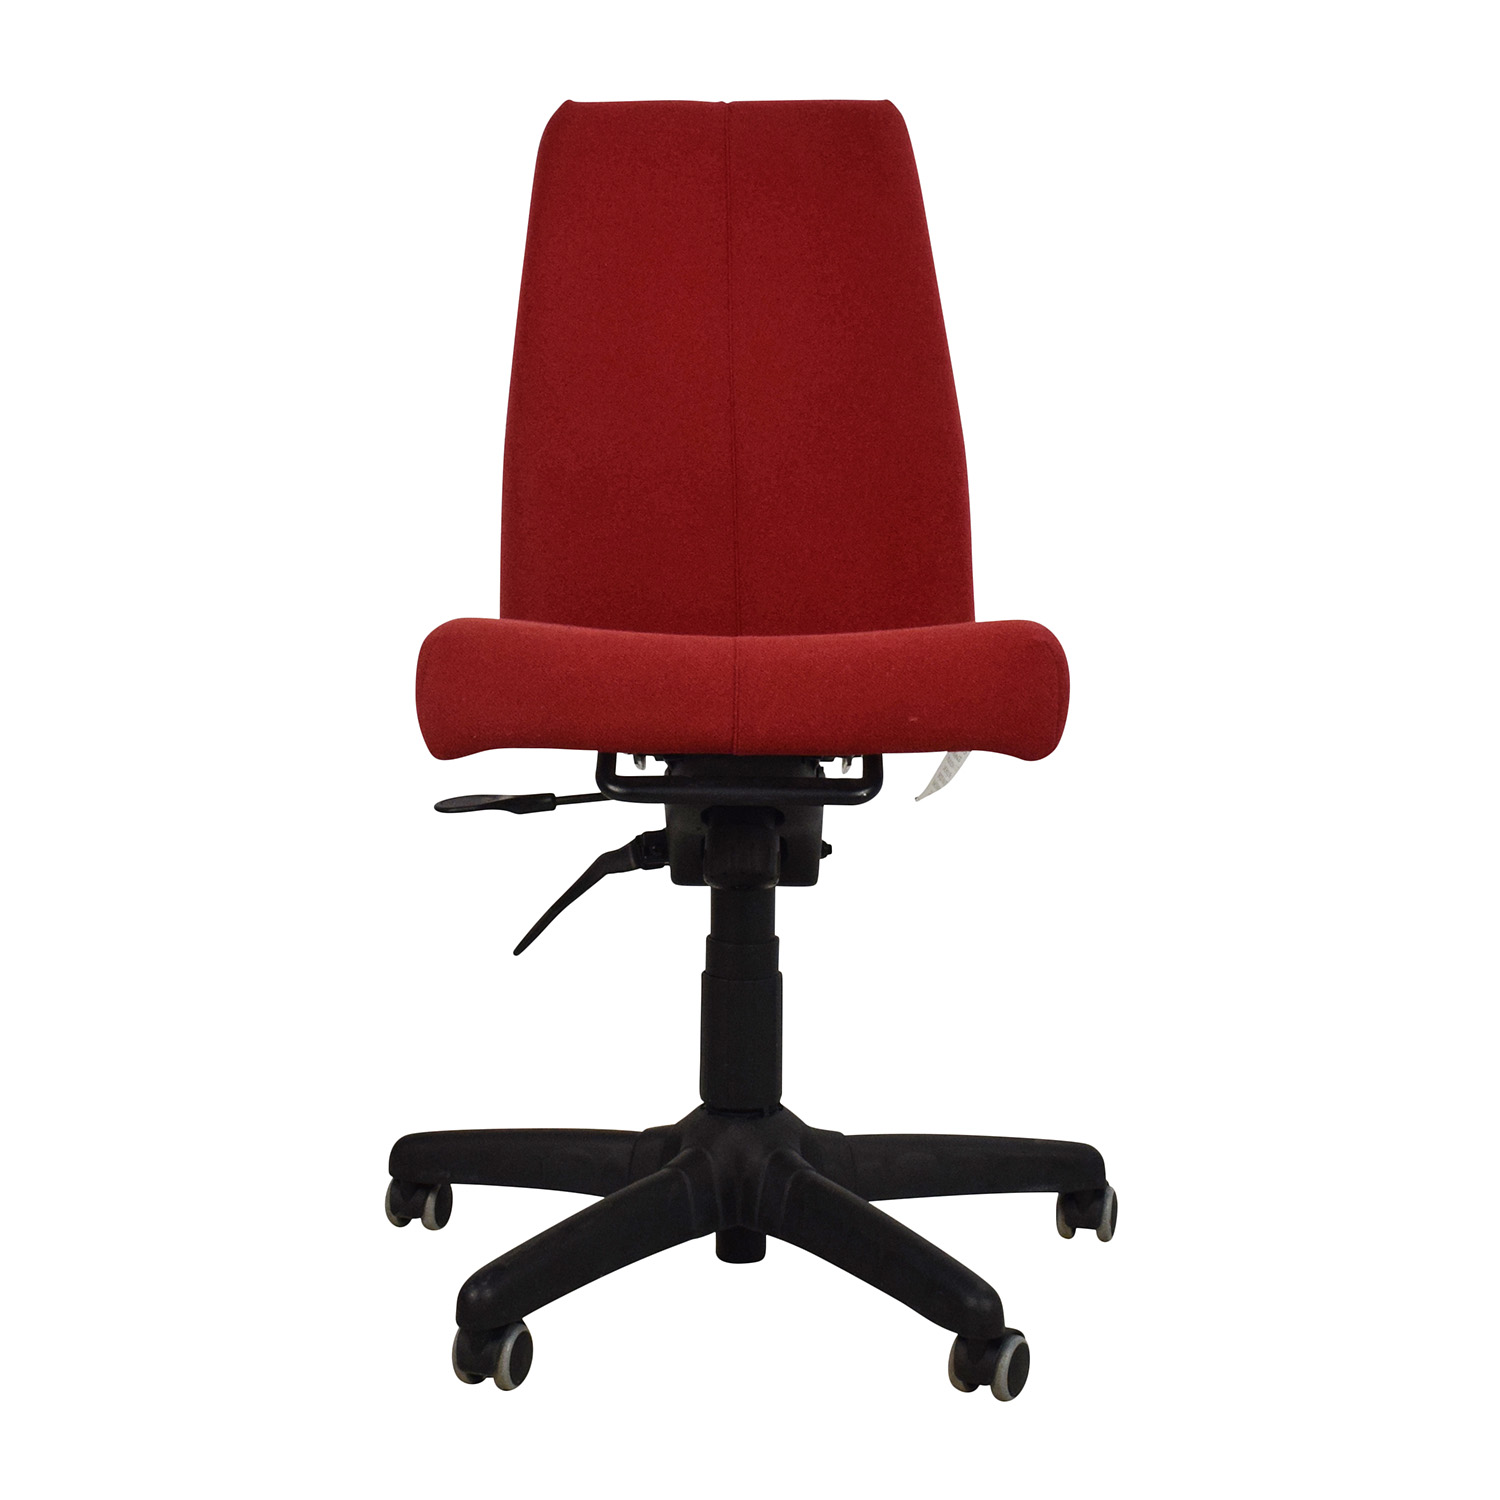 shop  Red Armless Adjustable Home Office Chair online